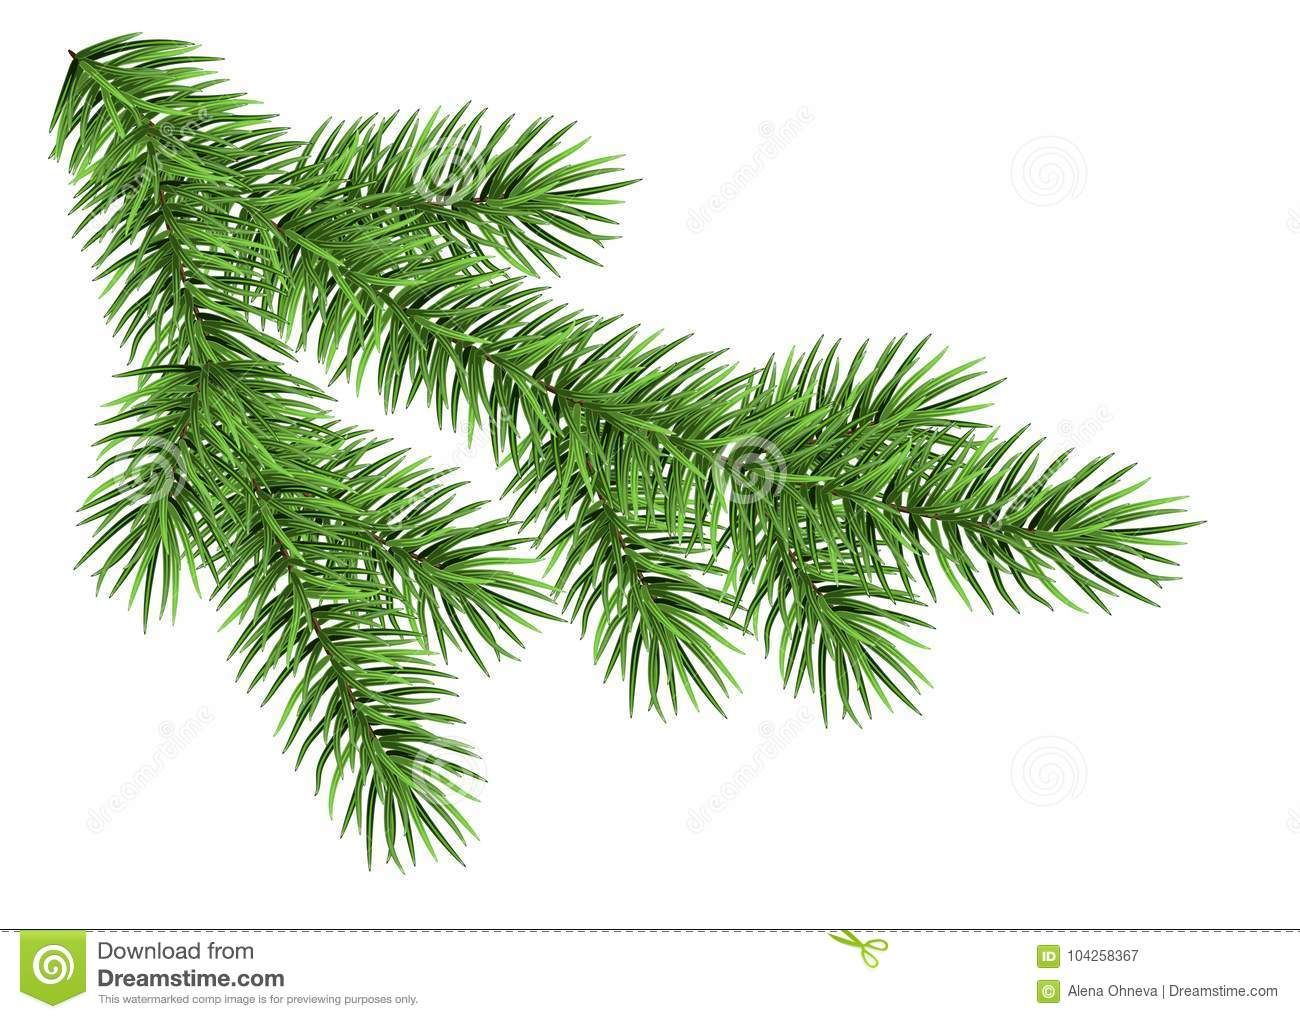 Illustration About Spruce Branch Isolated On White Background Green Fir Realistic Christmas Realistic Christmas Trees Christmas Tree Branches Winter Drawings